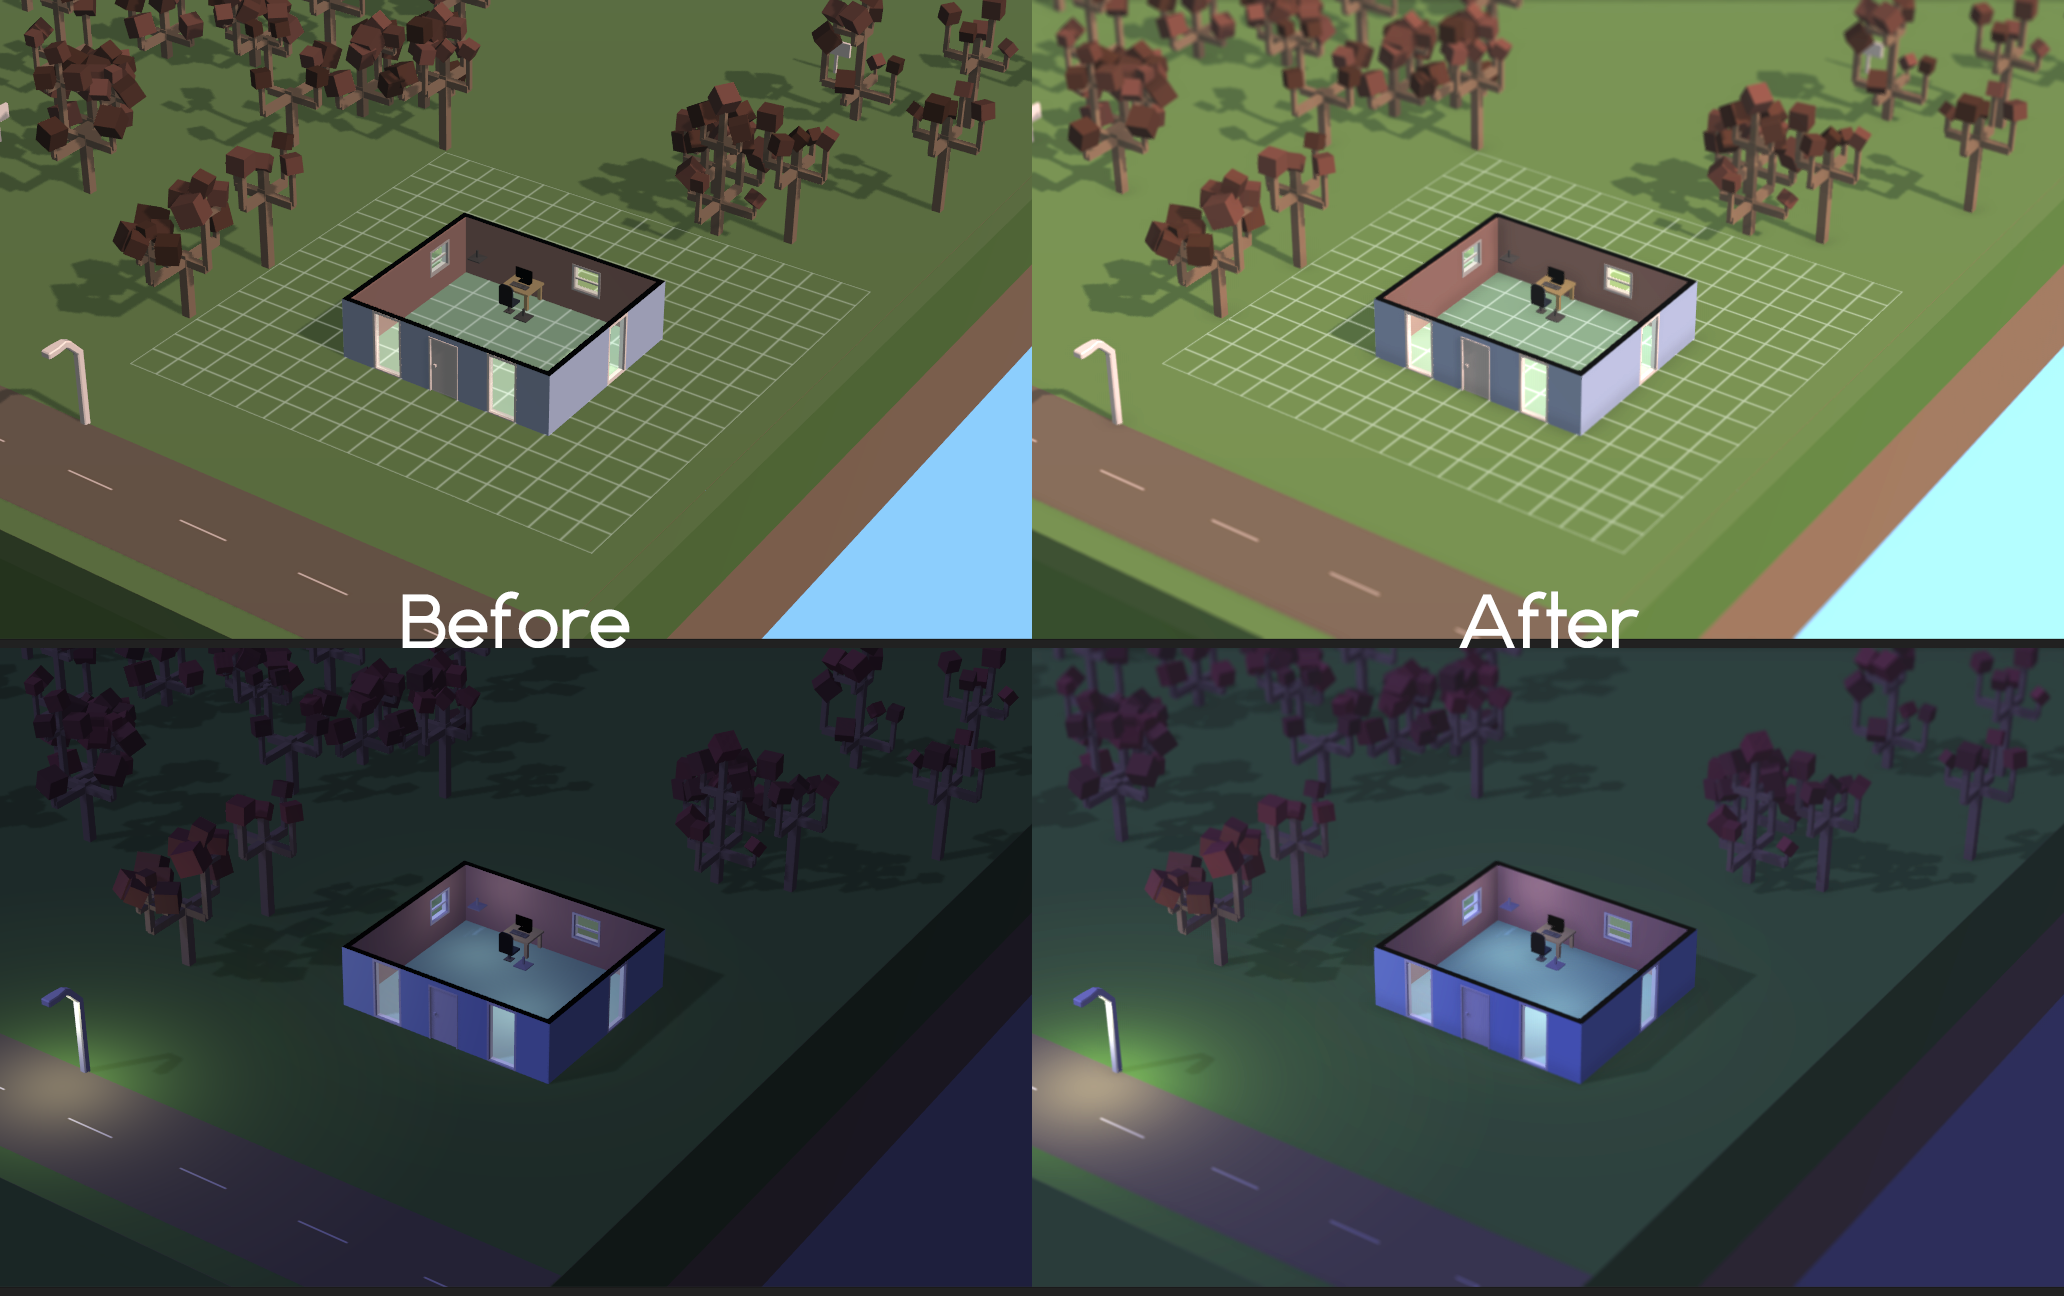 This is a before and after picture, after adding the post render effects from Unity Pro. I've added ambient occlusion, better anti-aliasing, tilt shift blur and color correction using a look-up texture. The effects of the color correction are probably most noticeable in this picture.